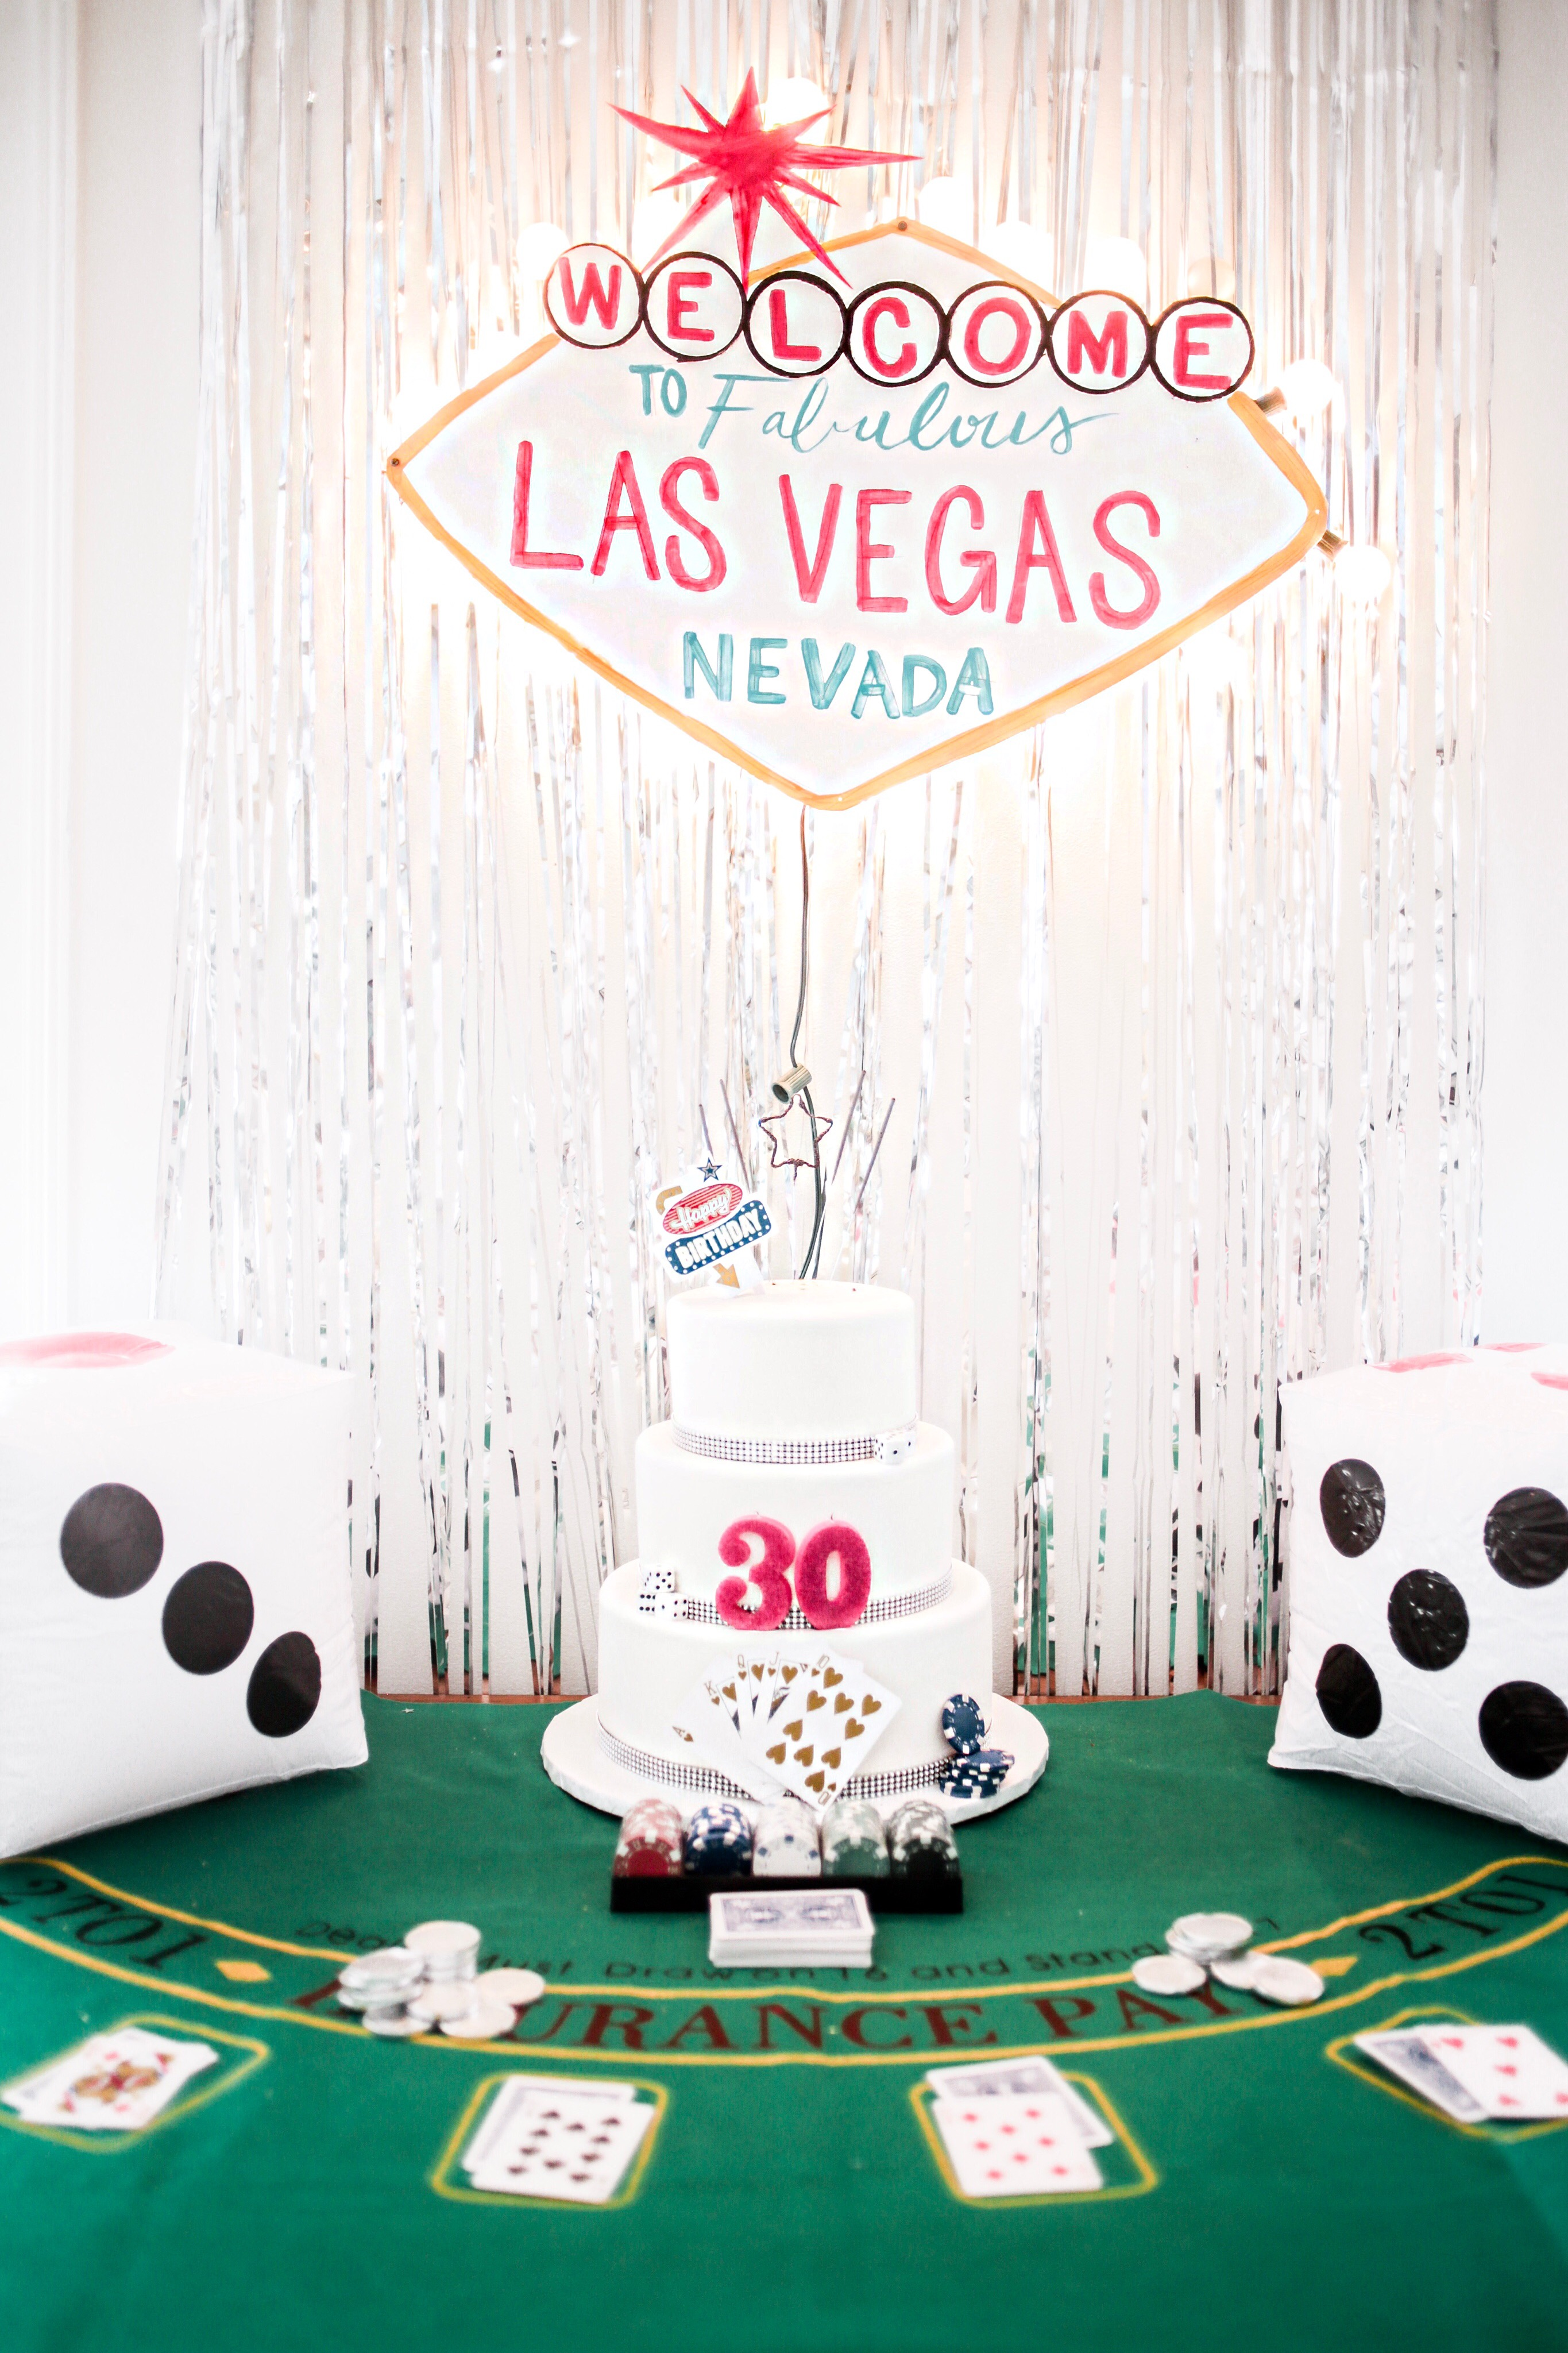 DIY 3 tier fondant vegas casino theme party girl birthday cake bachelorette // Charleston Fashion blogger Dannon K. Collard Like The Yogurt